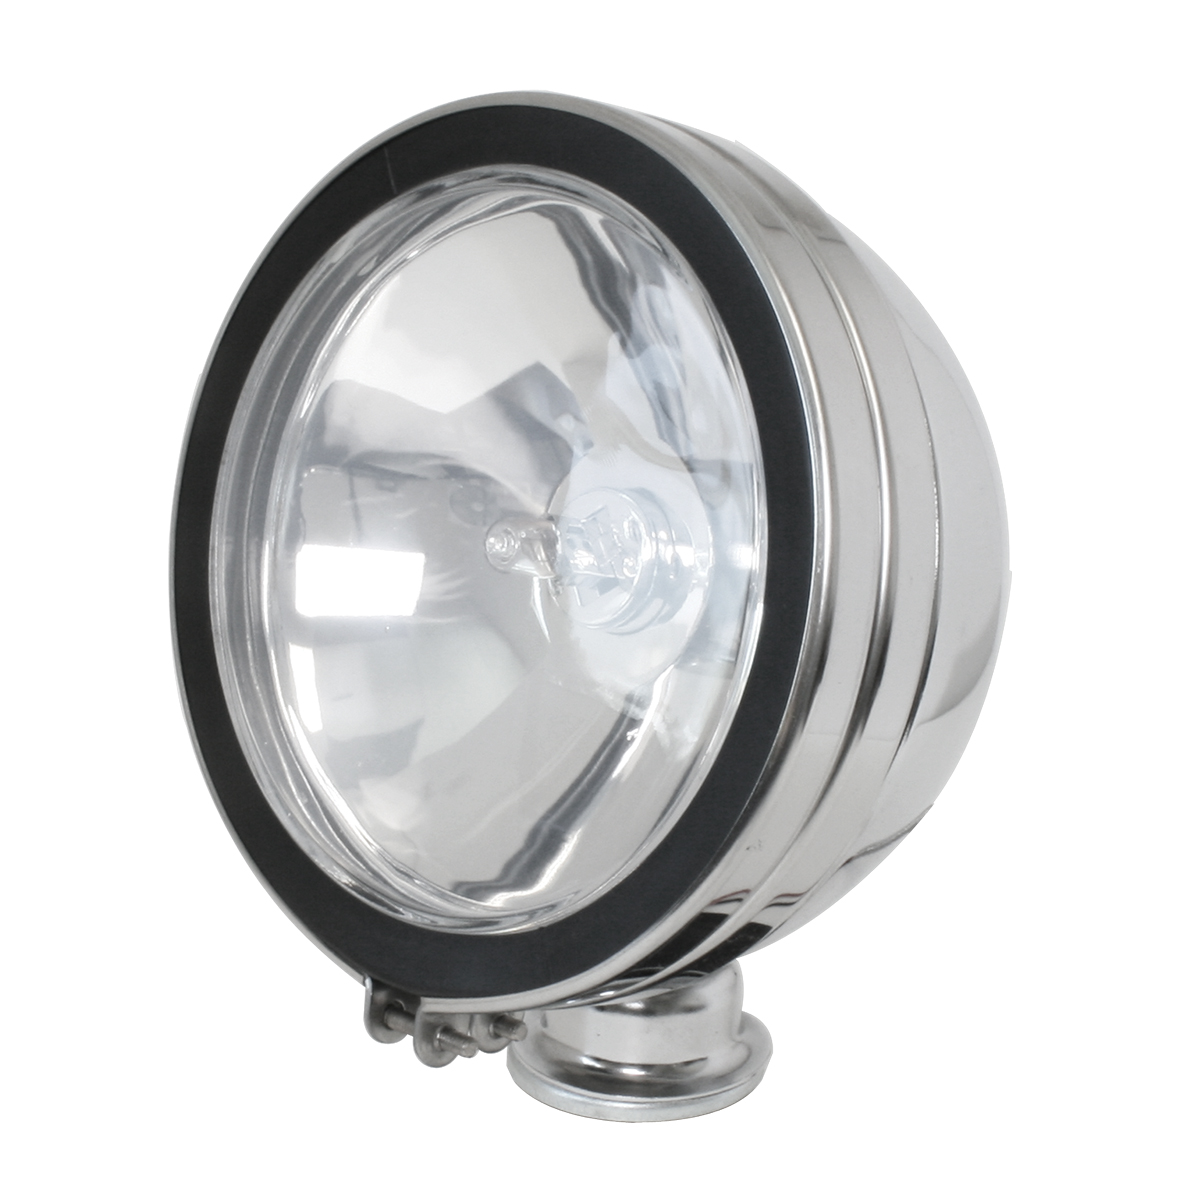 """#80625 6"""" Chrome Plated Off-Road Light 100 Watts - Clear"""